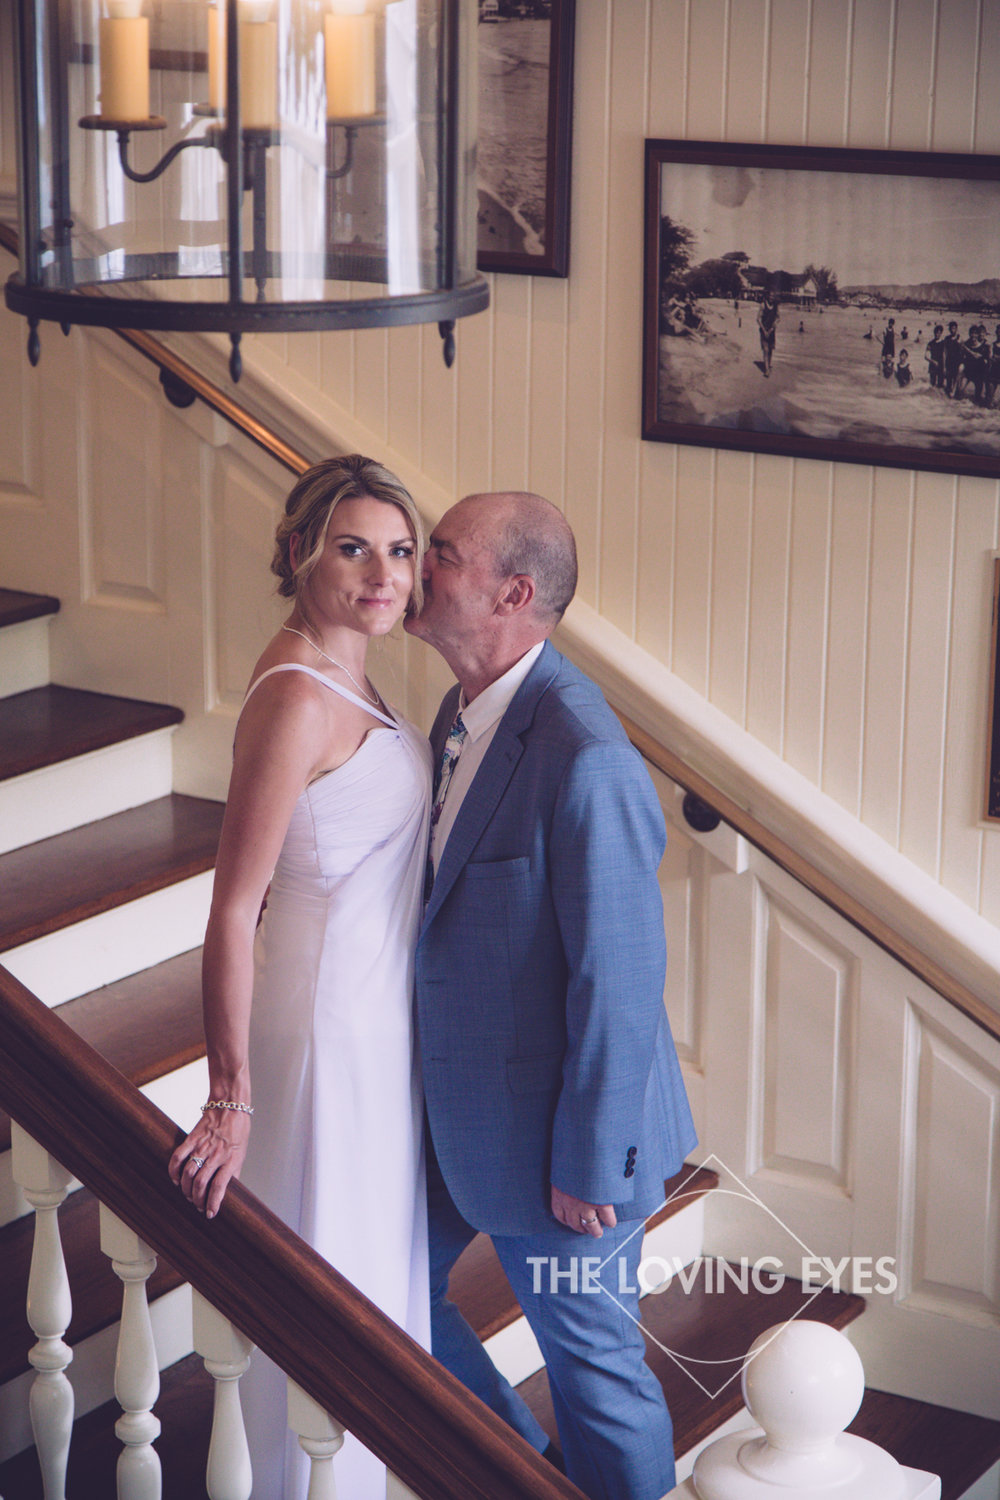 Bride and groom on their wedding day at the grand staircase of the Moana Surfrider in Waikiki